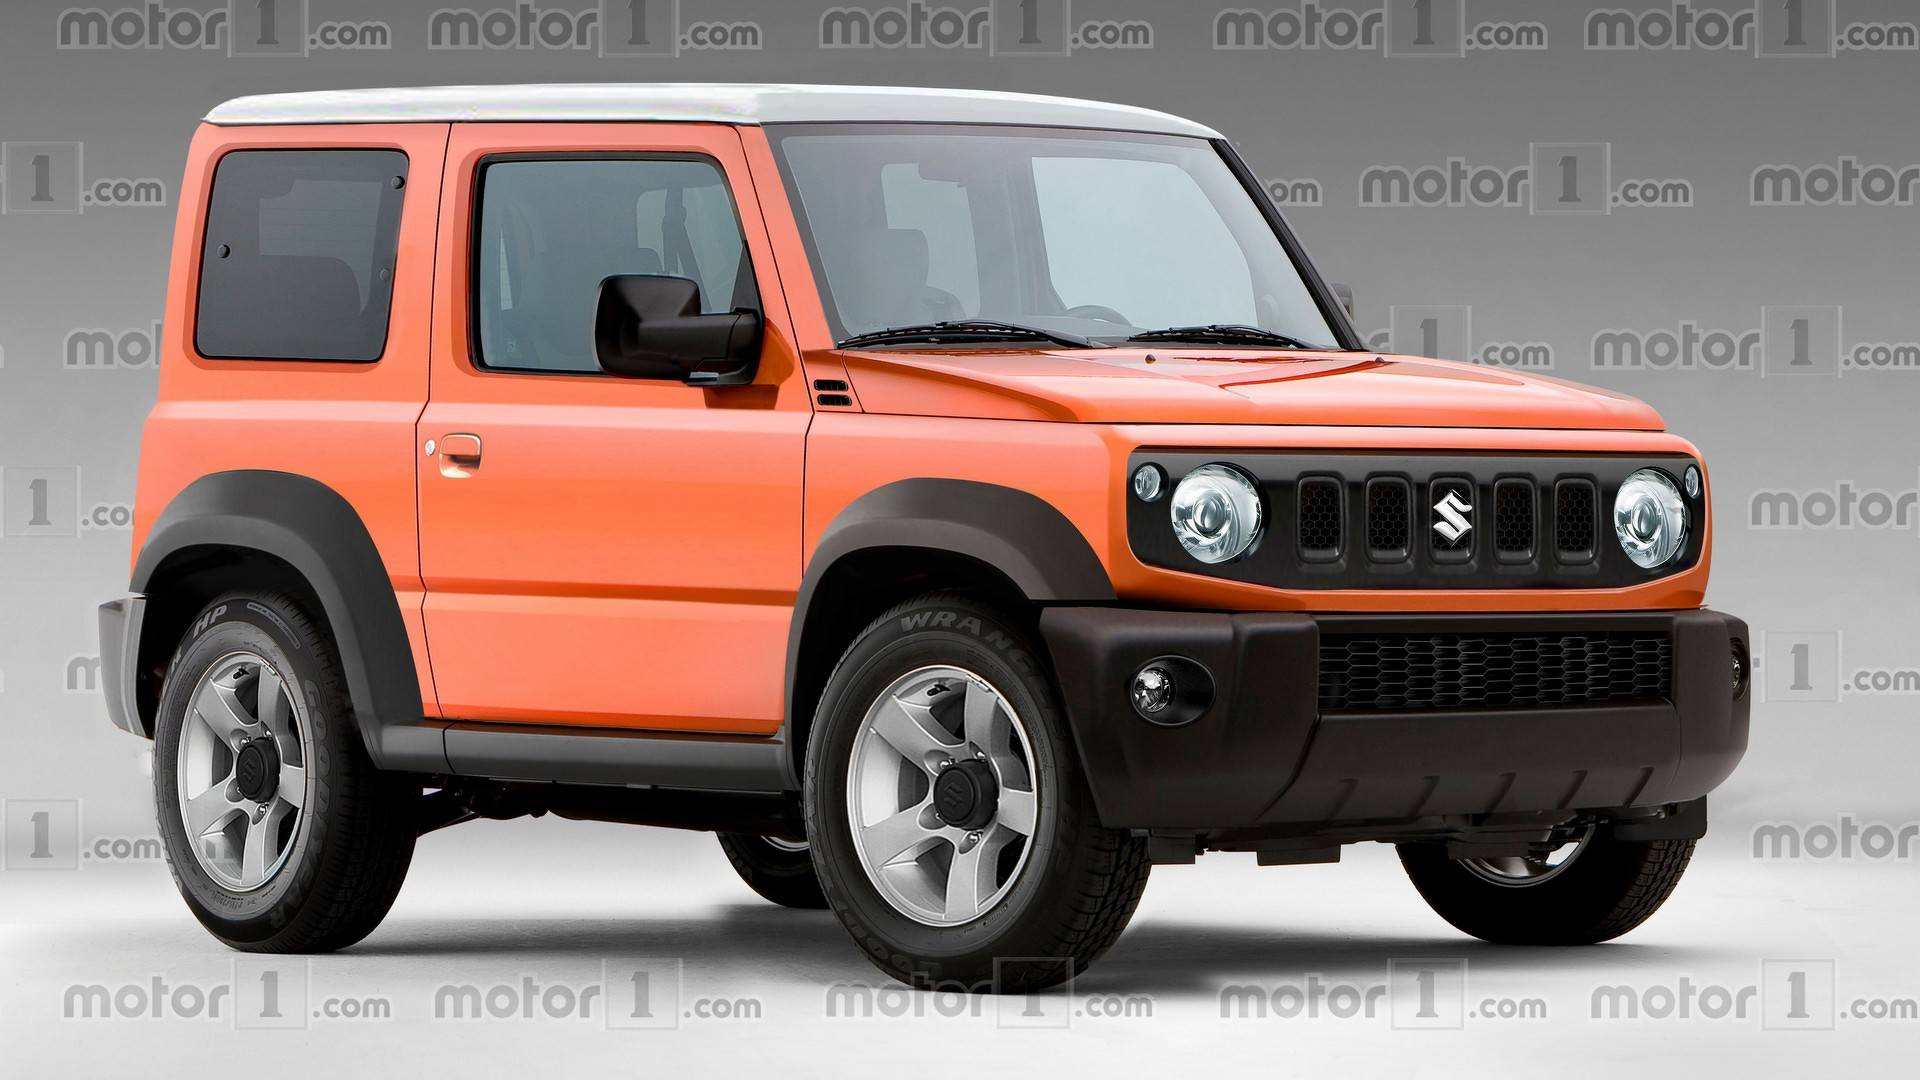 44 Best 2020 Suzuki Jimny Model Photos